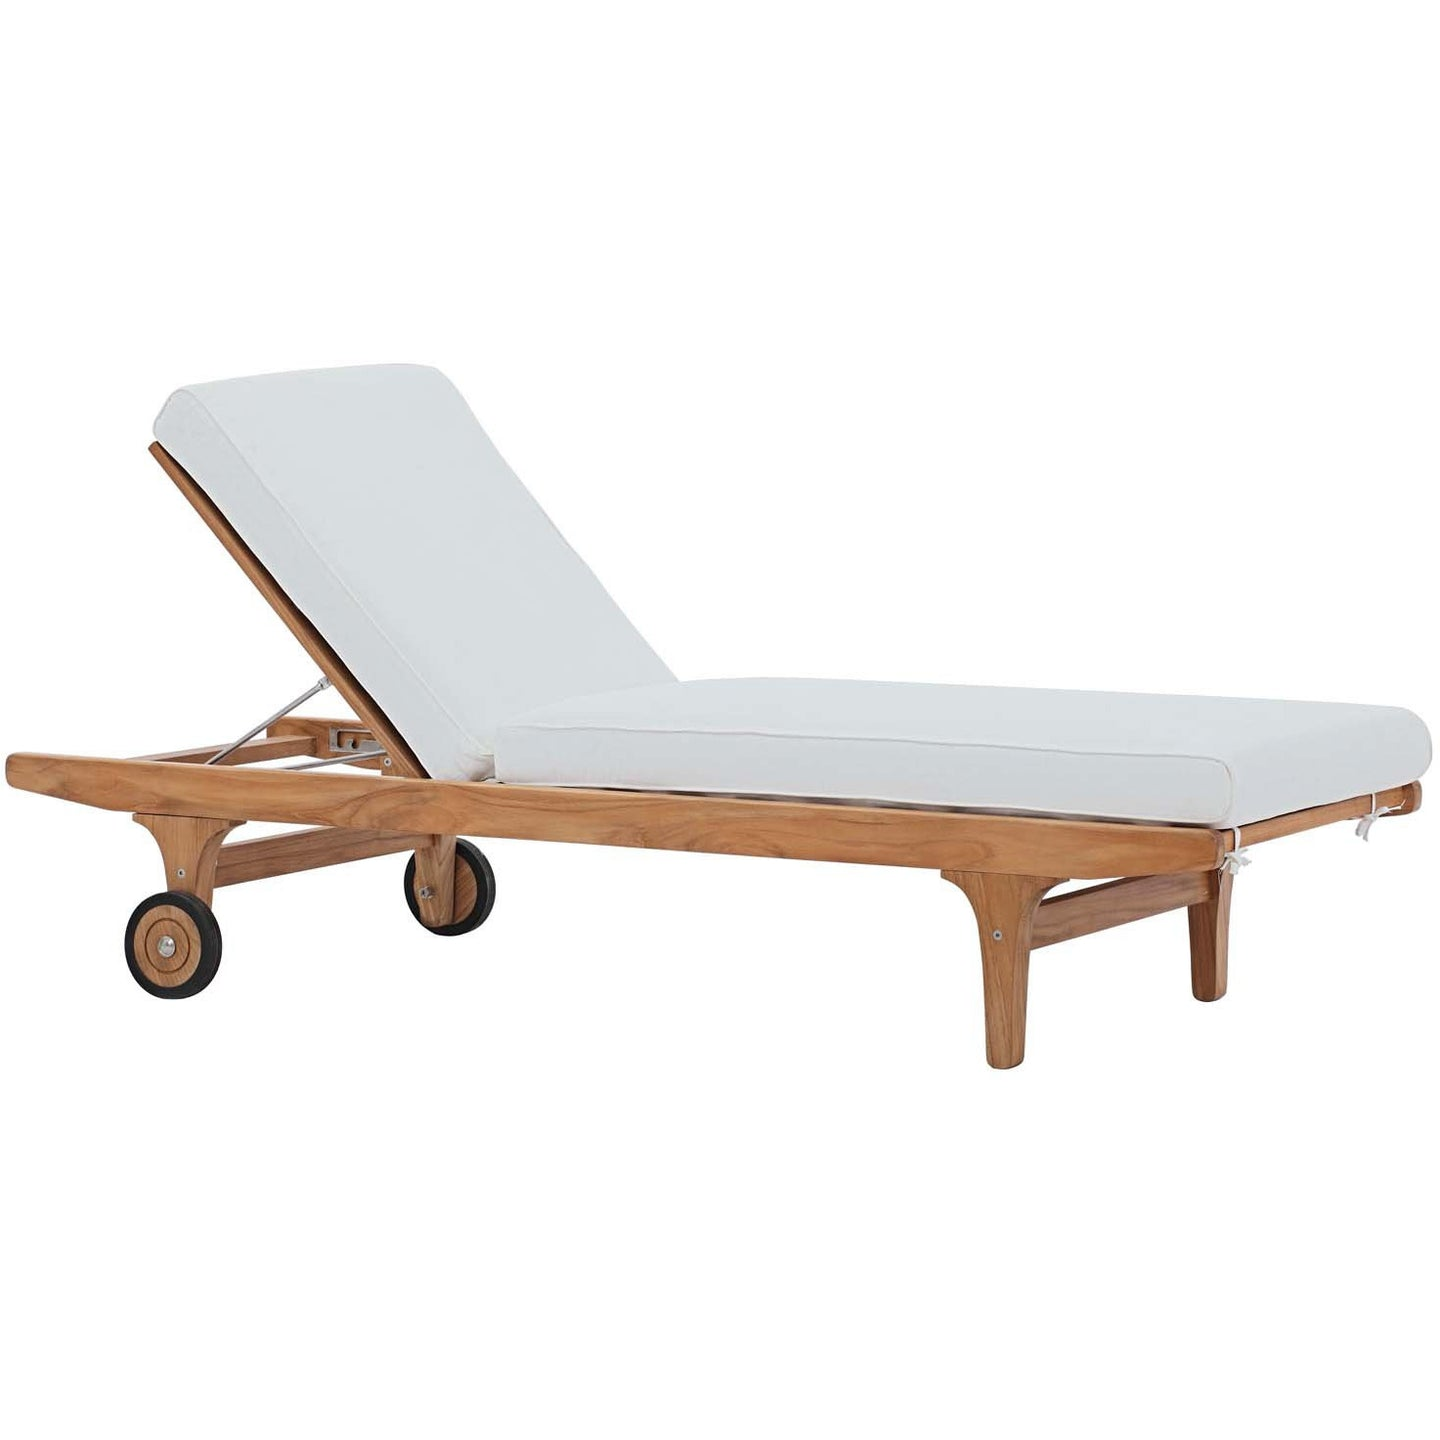 Modway Furniture Modern Saratoga Outdoor Patio Teak Chaise Lounge - EEI-2937